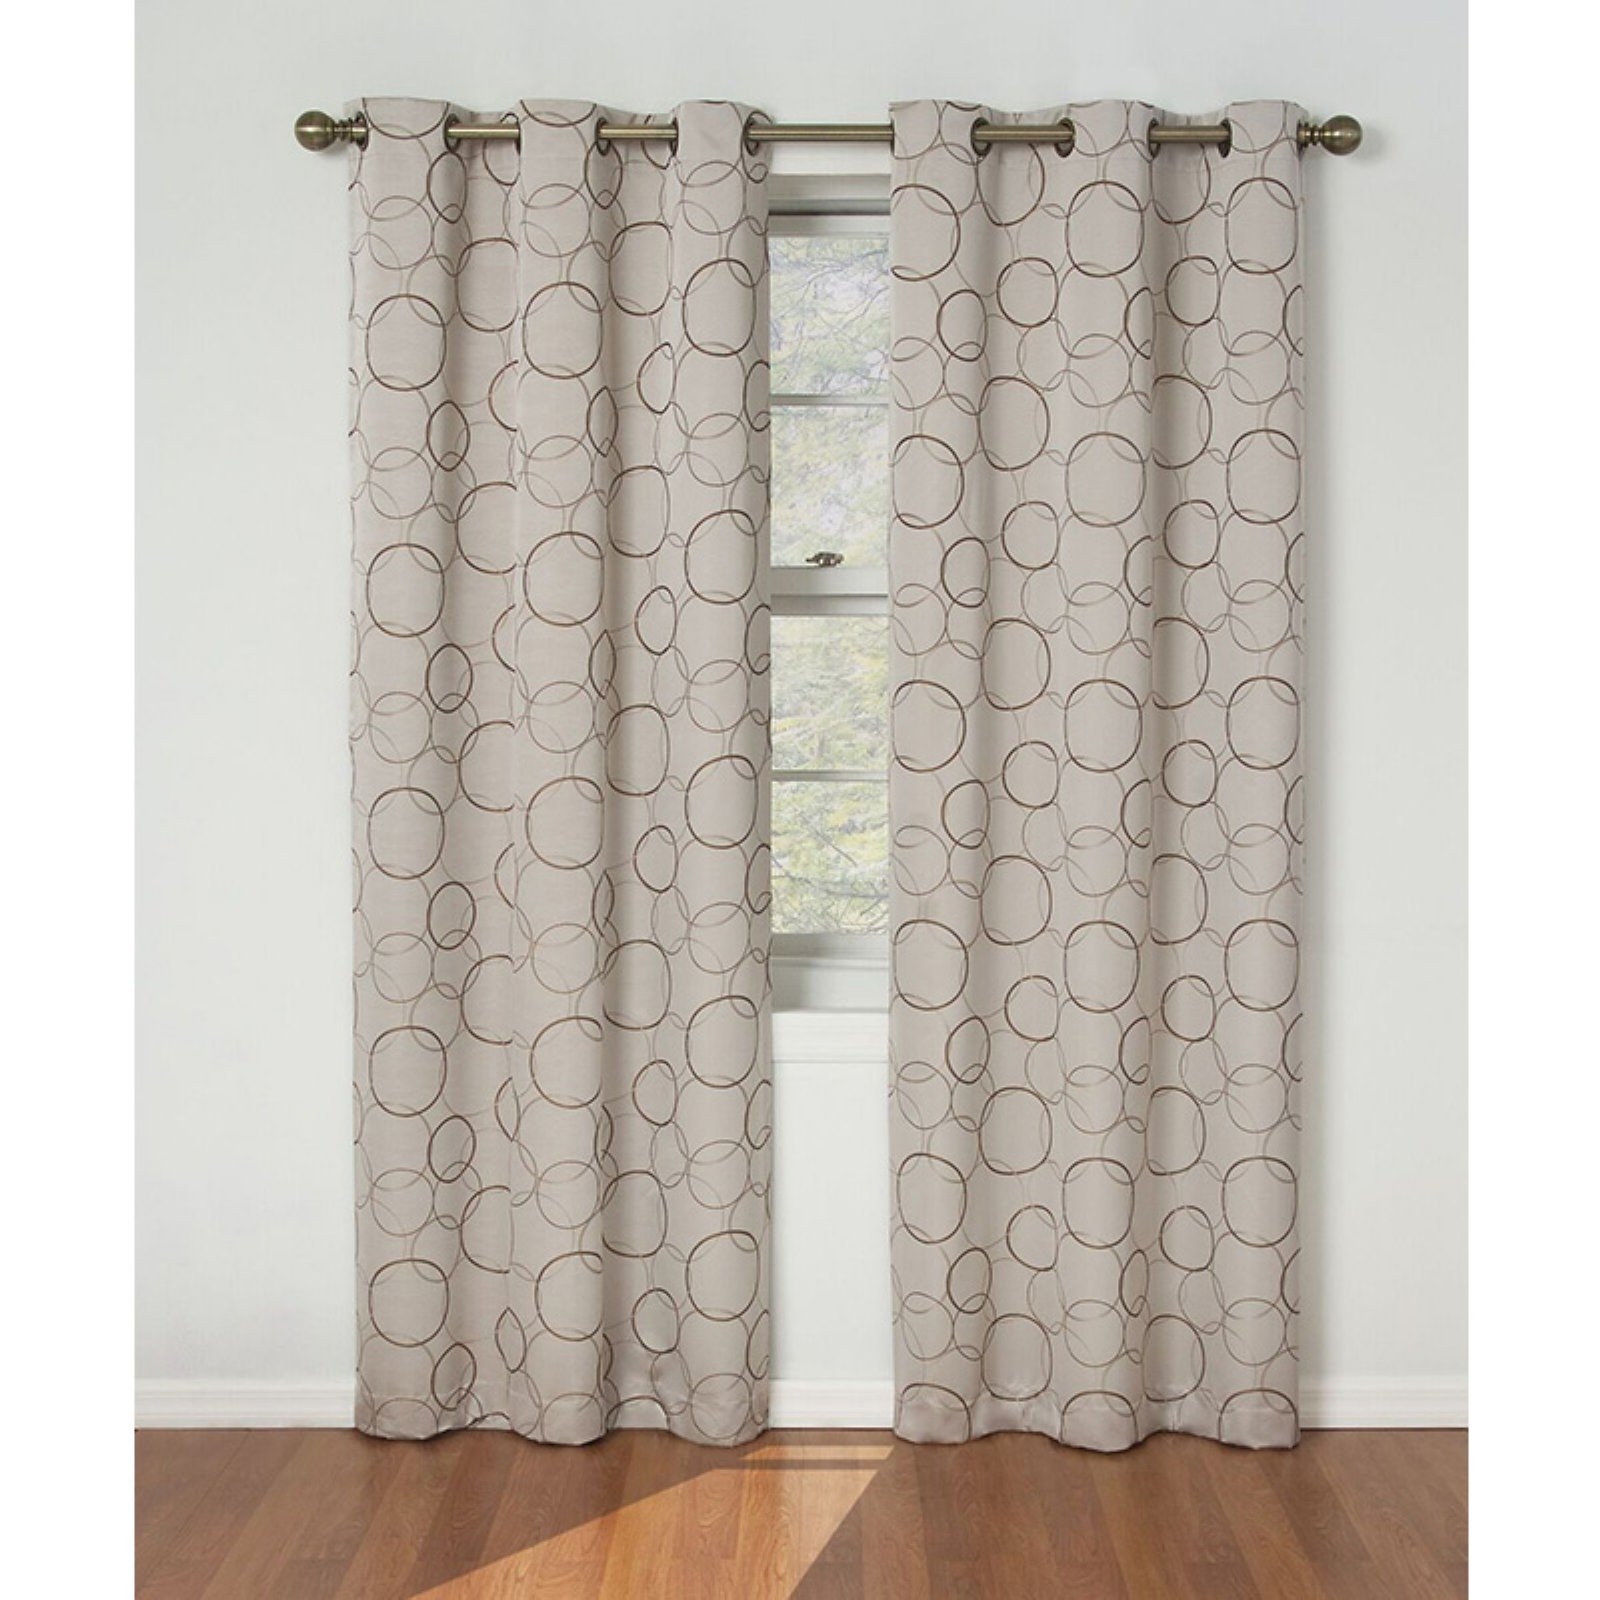 Widely Used Eclipse Meridian Blackout Window Curtain Panel Inside Meridian Blackout Window Curtain Panels (View 3 of 20)